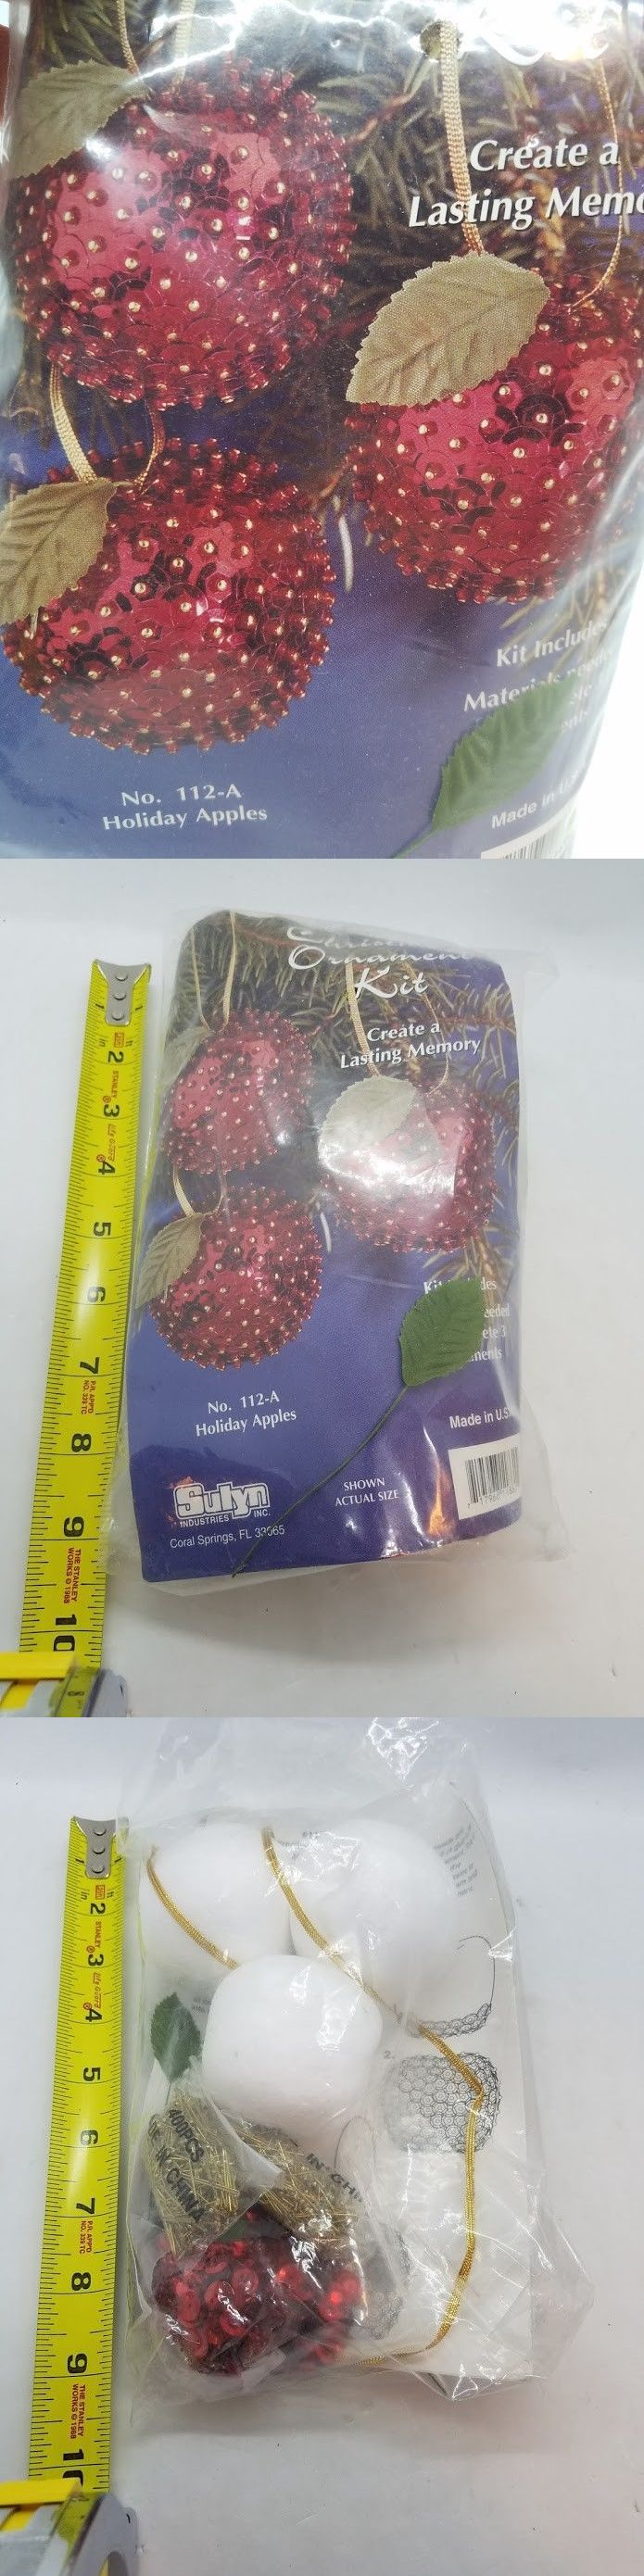 Other Beading Kits 162094 Vintage Sulyn Holiday Apples Sequin Christmas